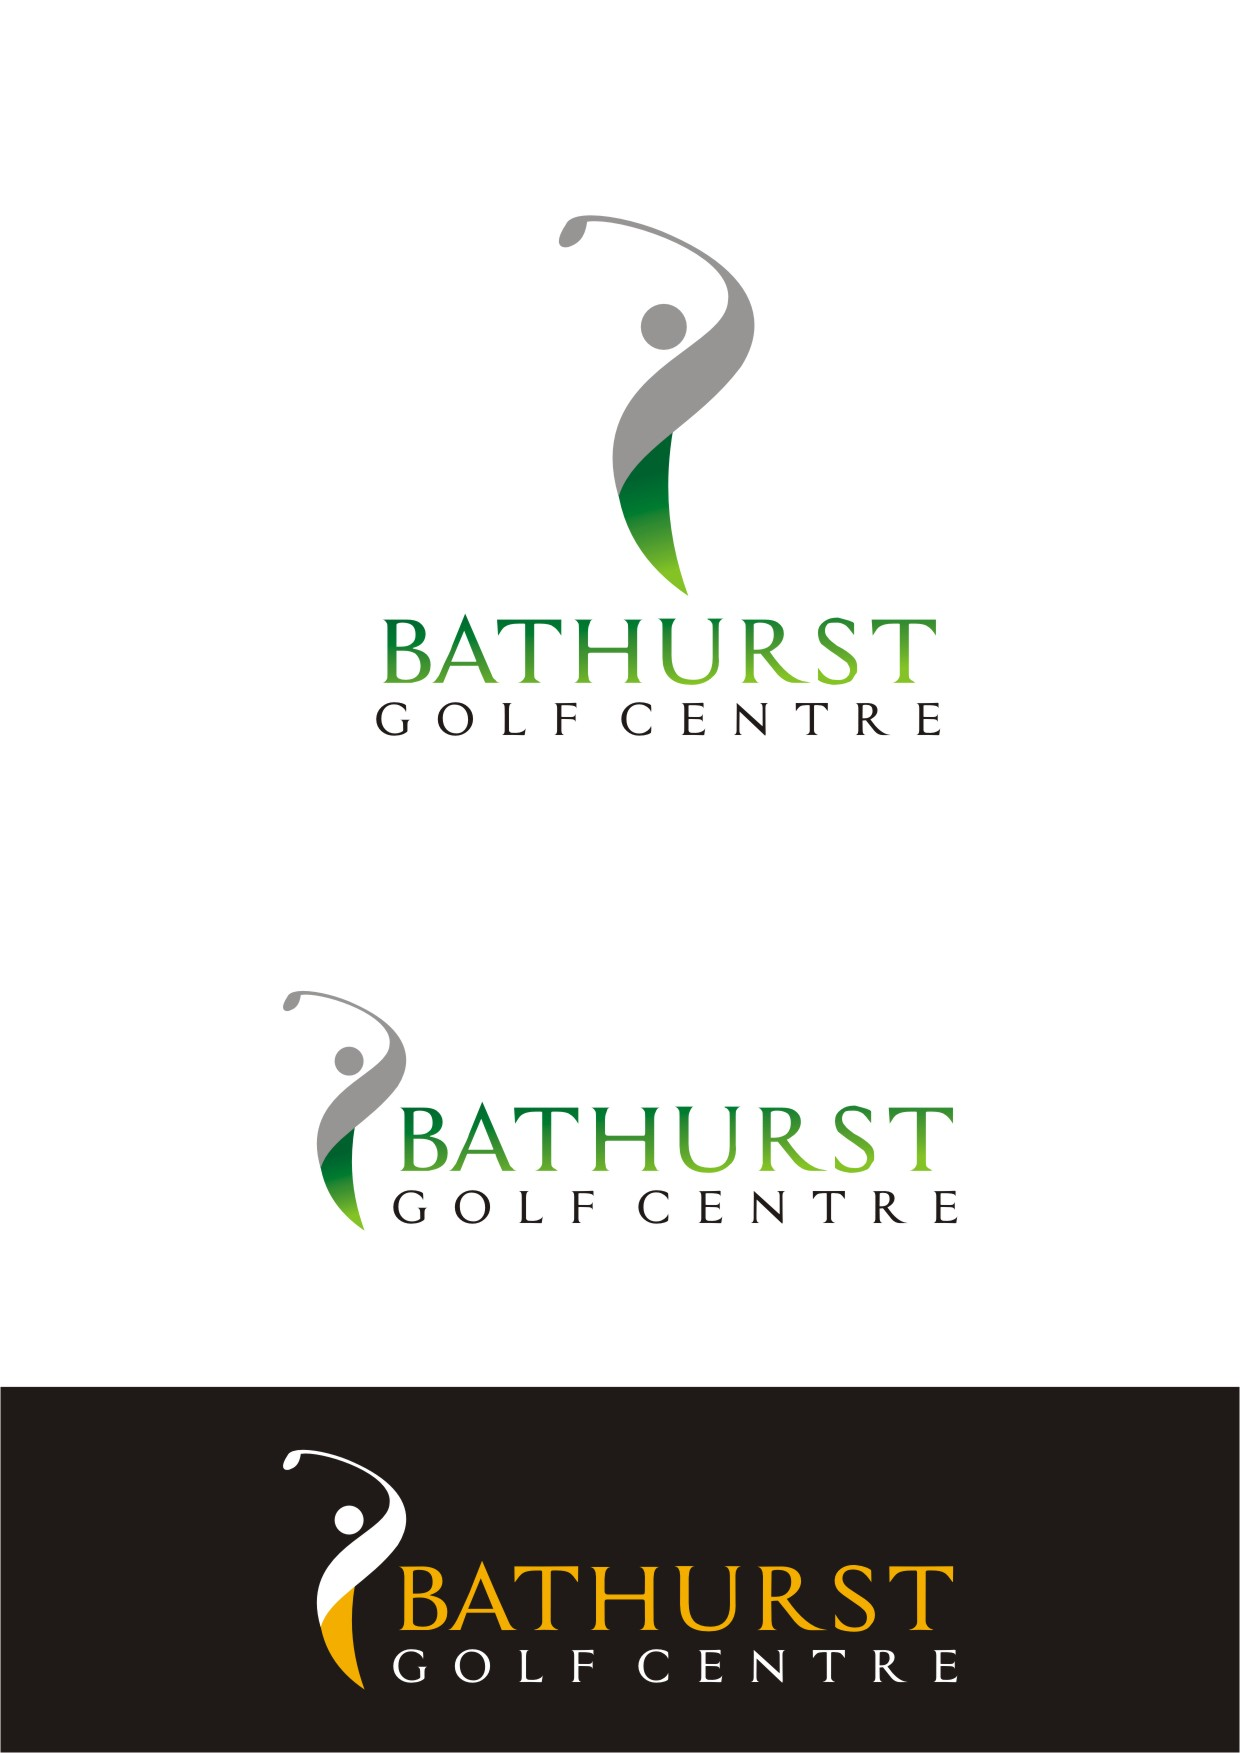 Logo Design by Spider Graphics - Entry No. 96 in the Logo Design Contest Inspiring Logo Design for Bathurst Golf Centre.